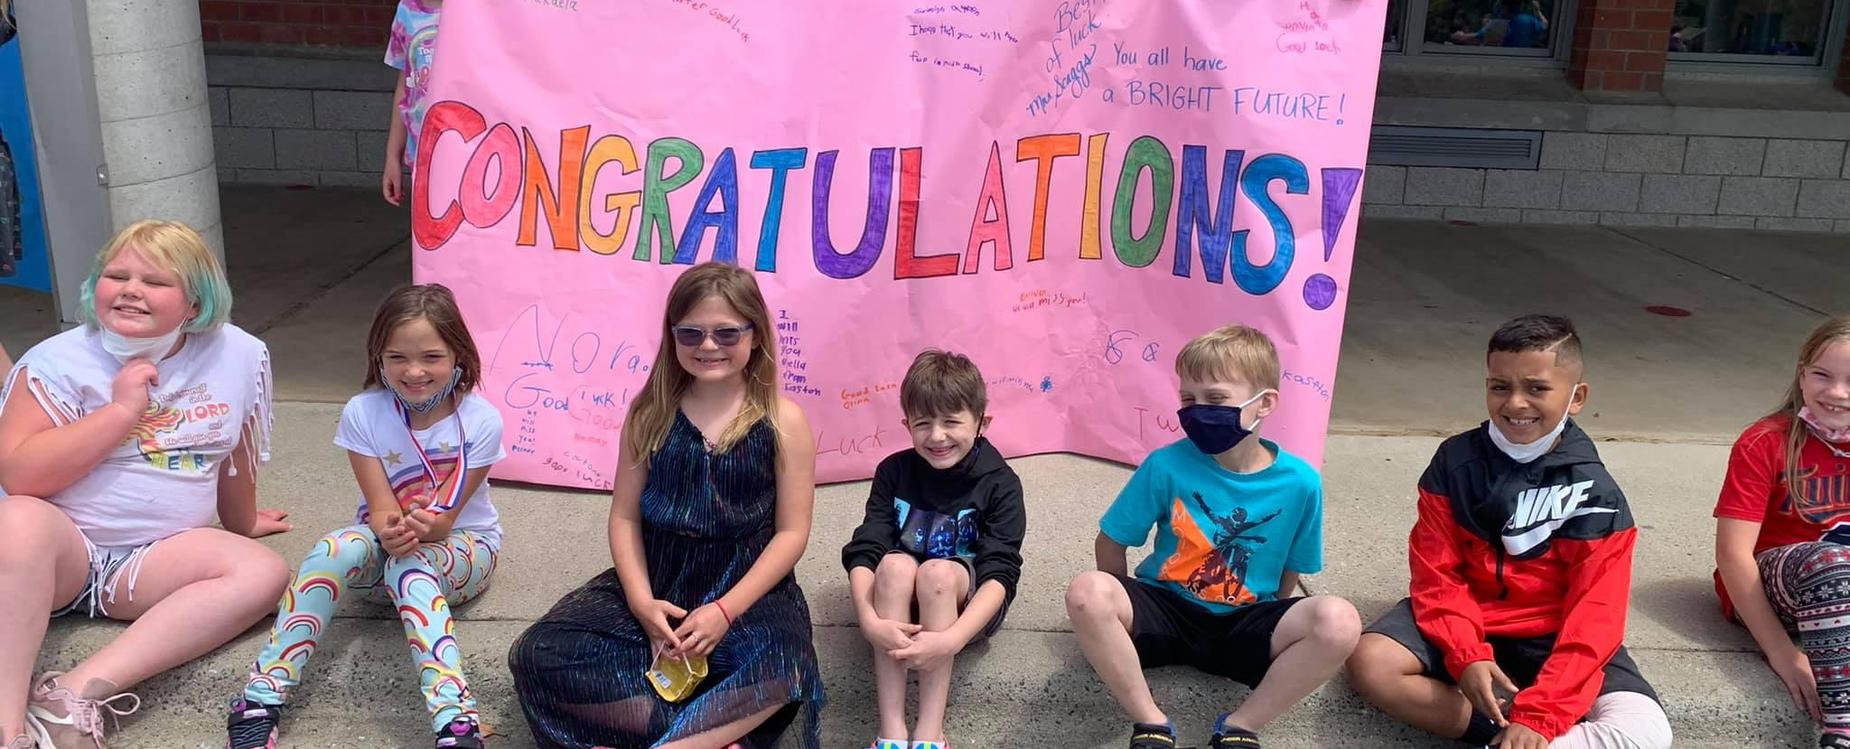 Students with Congratulations sign